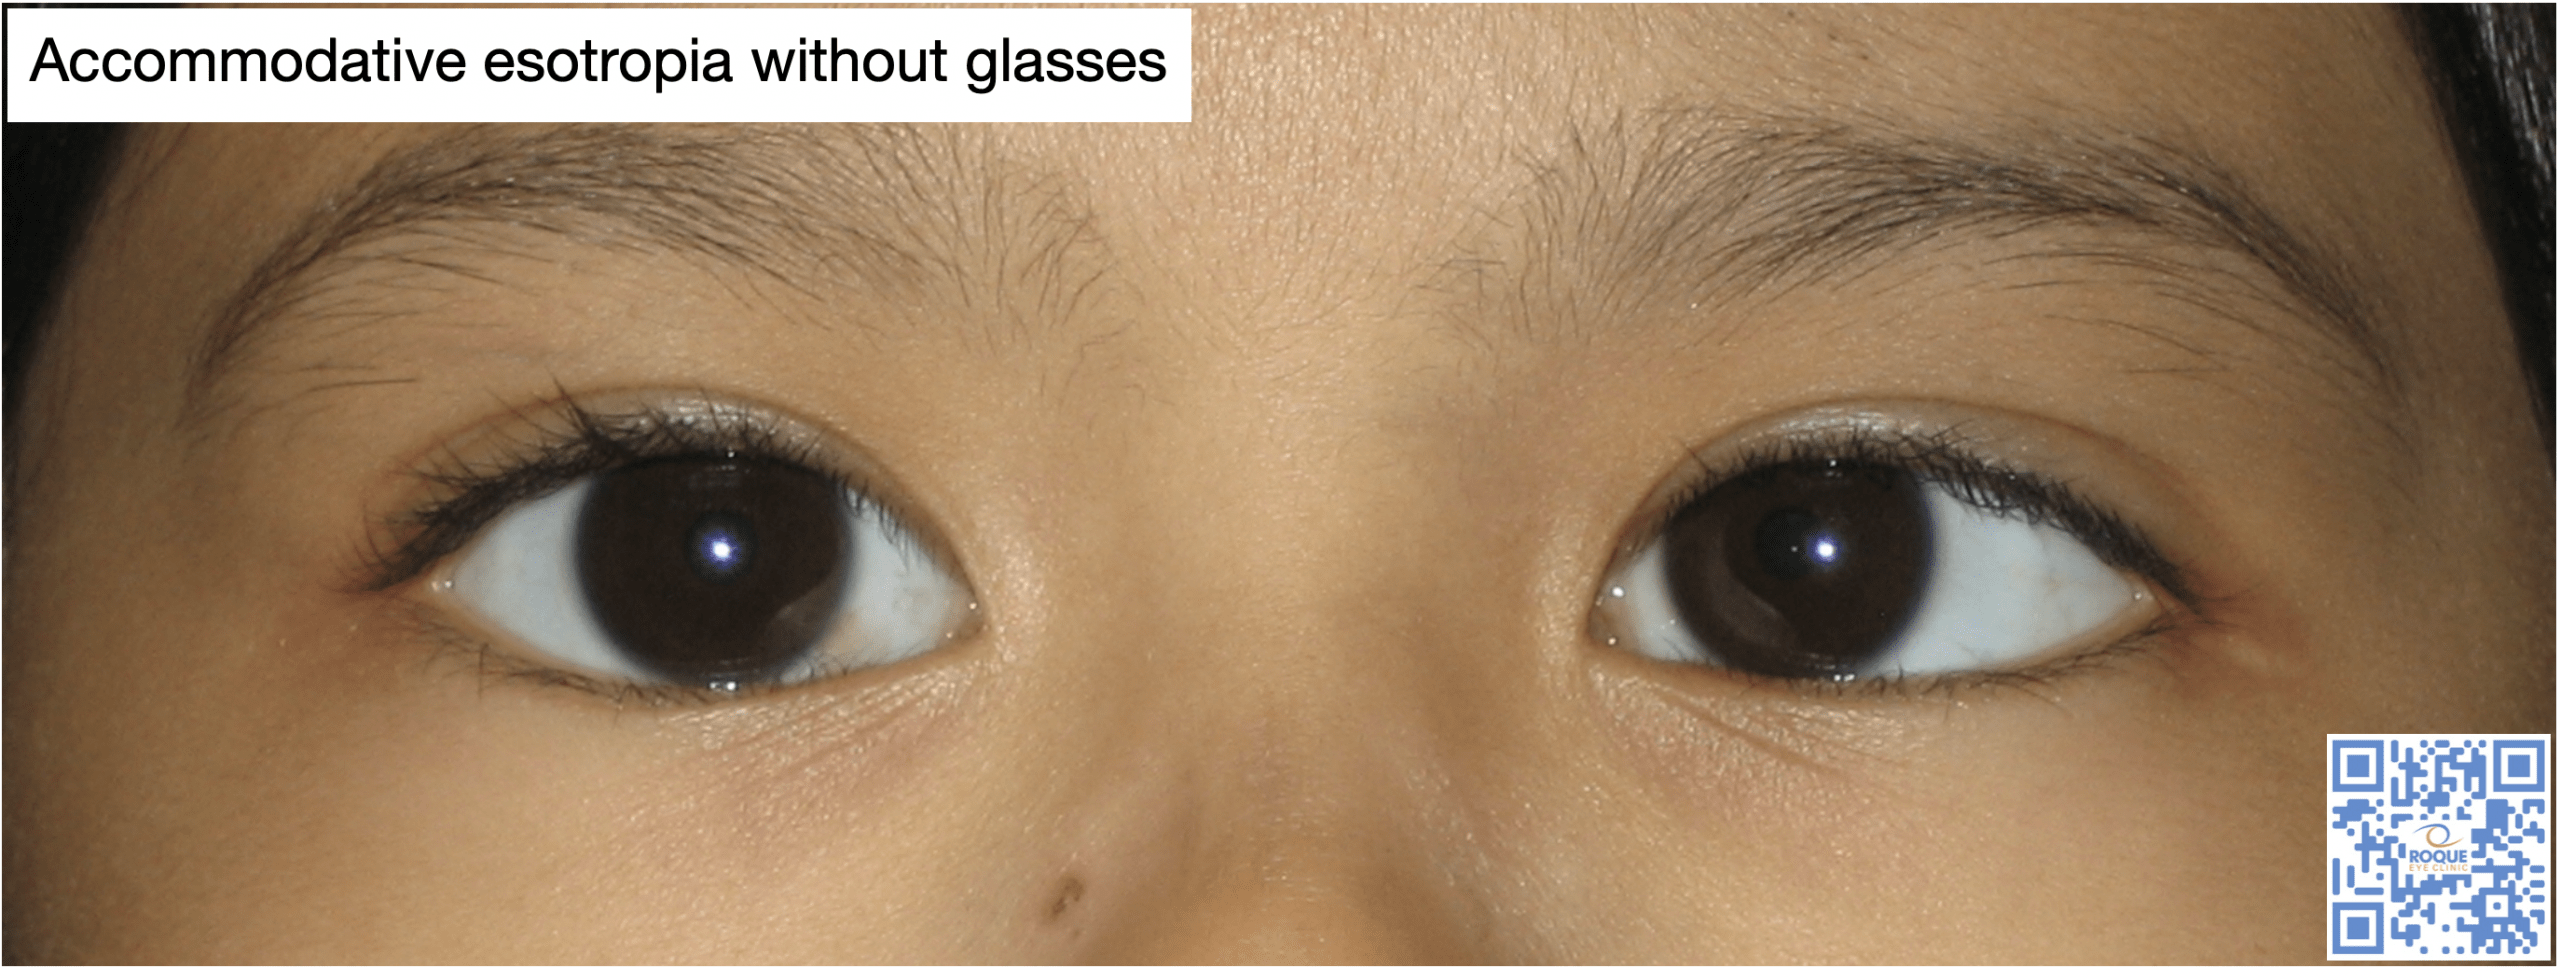 Accommodative esotropia without glasses